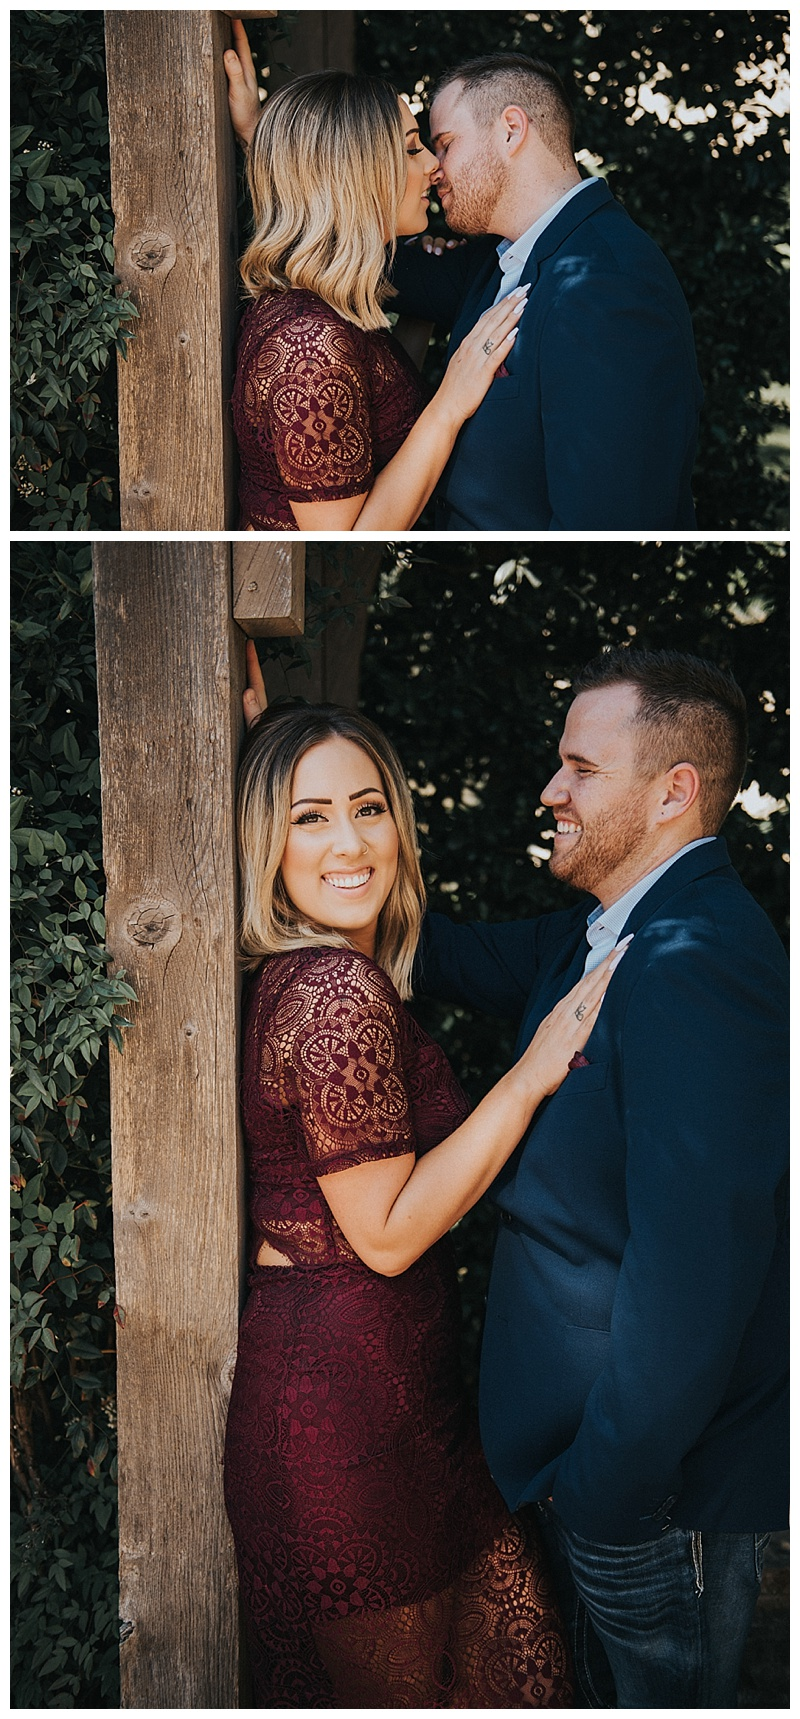 14Whitney Marie Photography. Dallas Wedding Photographer.jpg